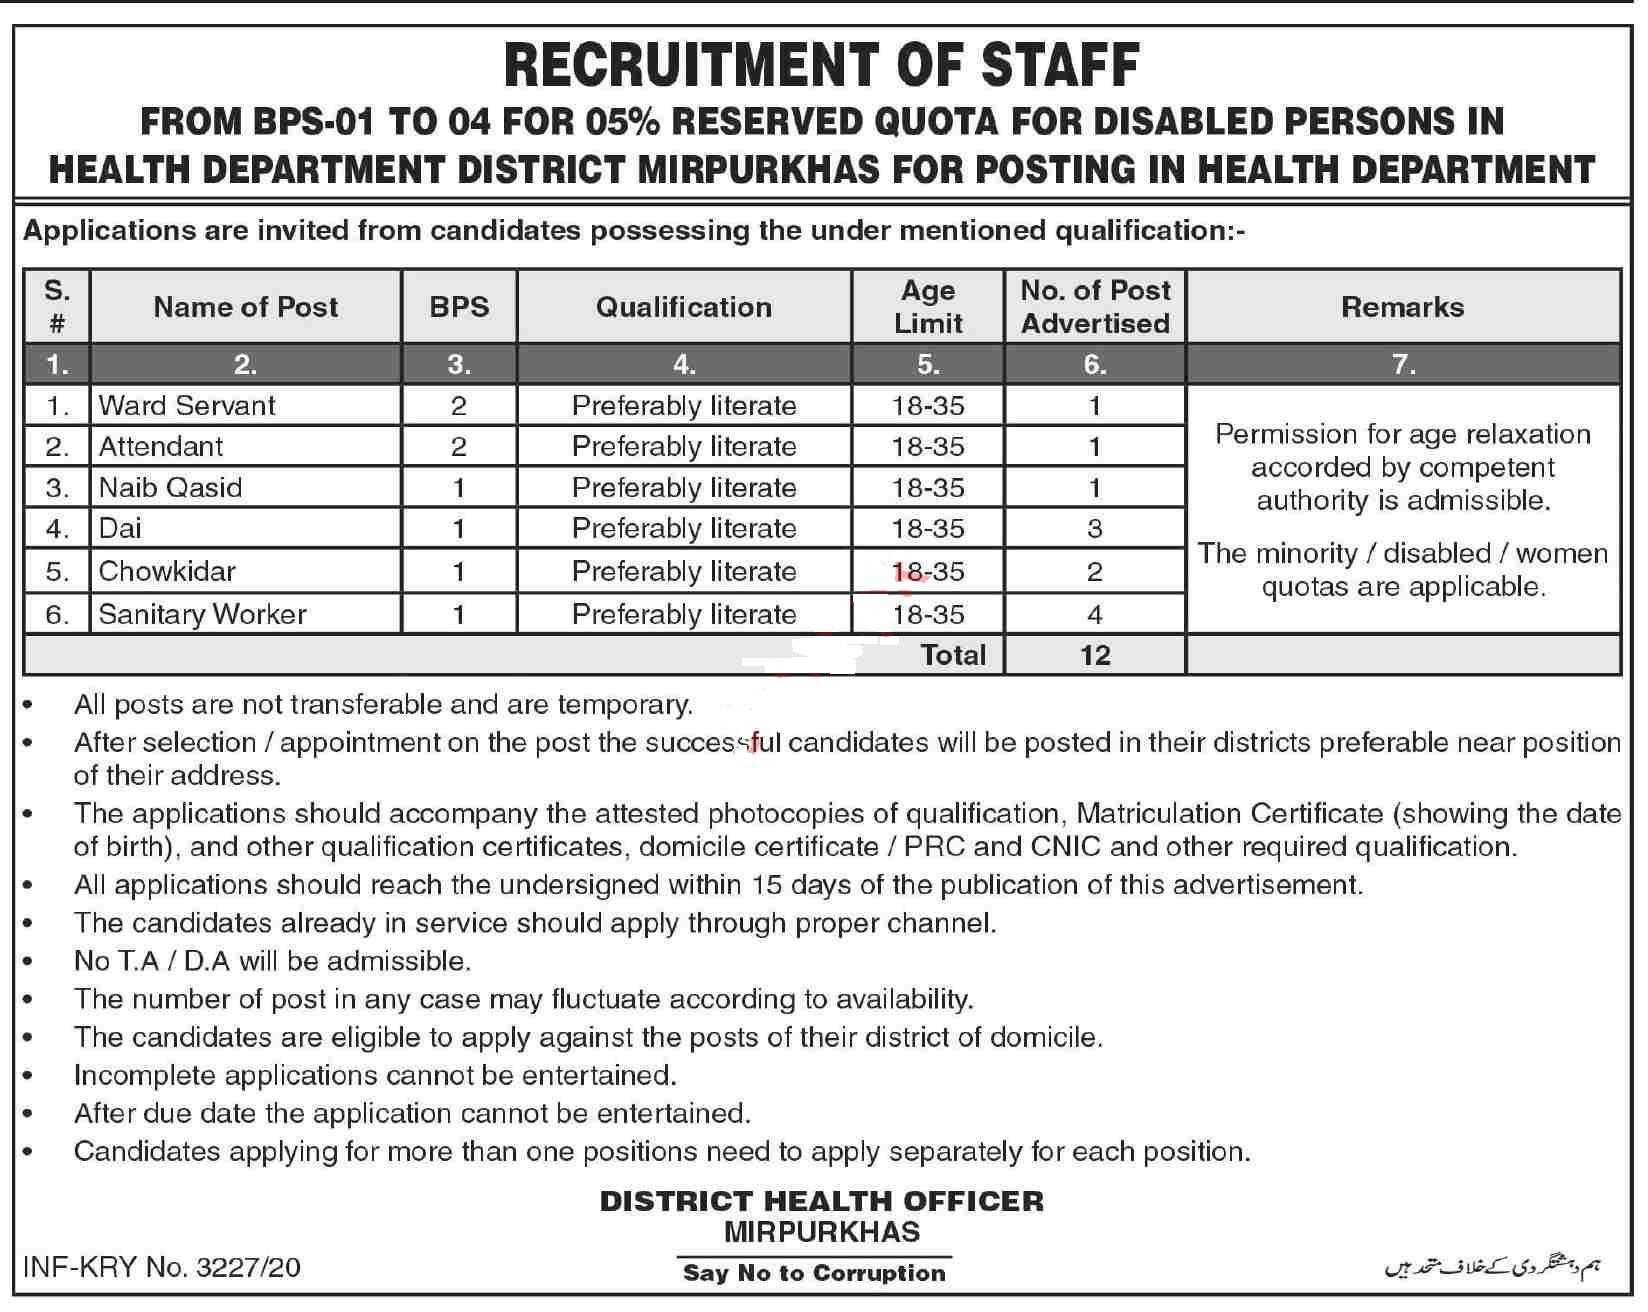 Health Department Mirpurkhas Jobs 2020 for Ward Servant, Attendant, Naib Qasid, Office Boy, Dai, Chowkidar, Sanitary Worker, Sweeper